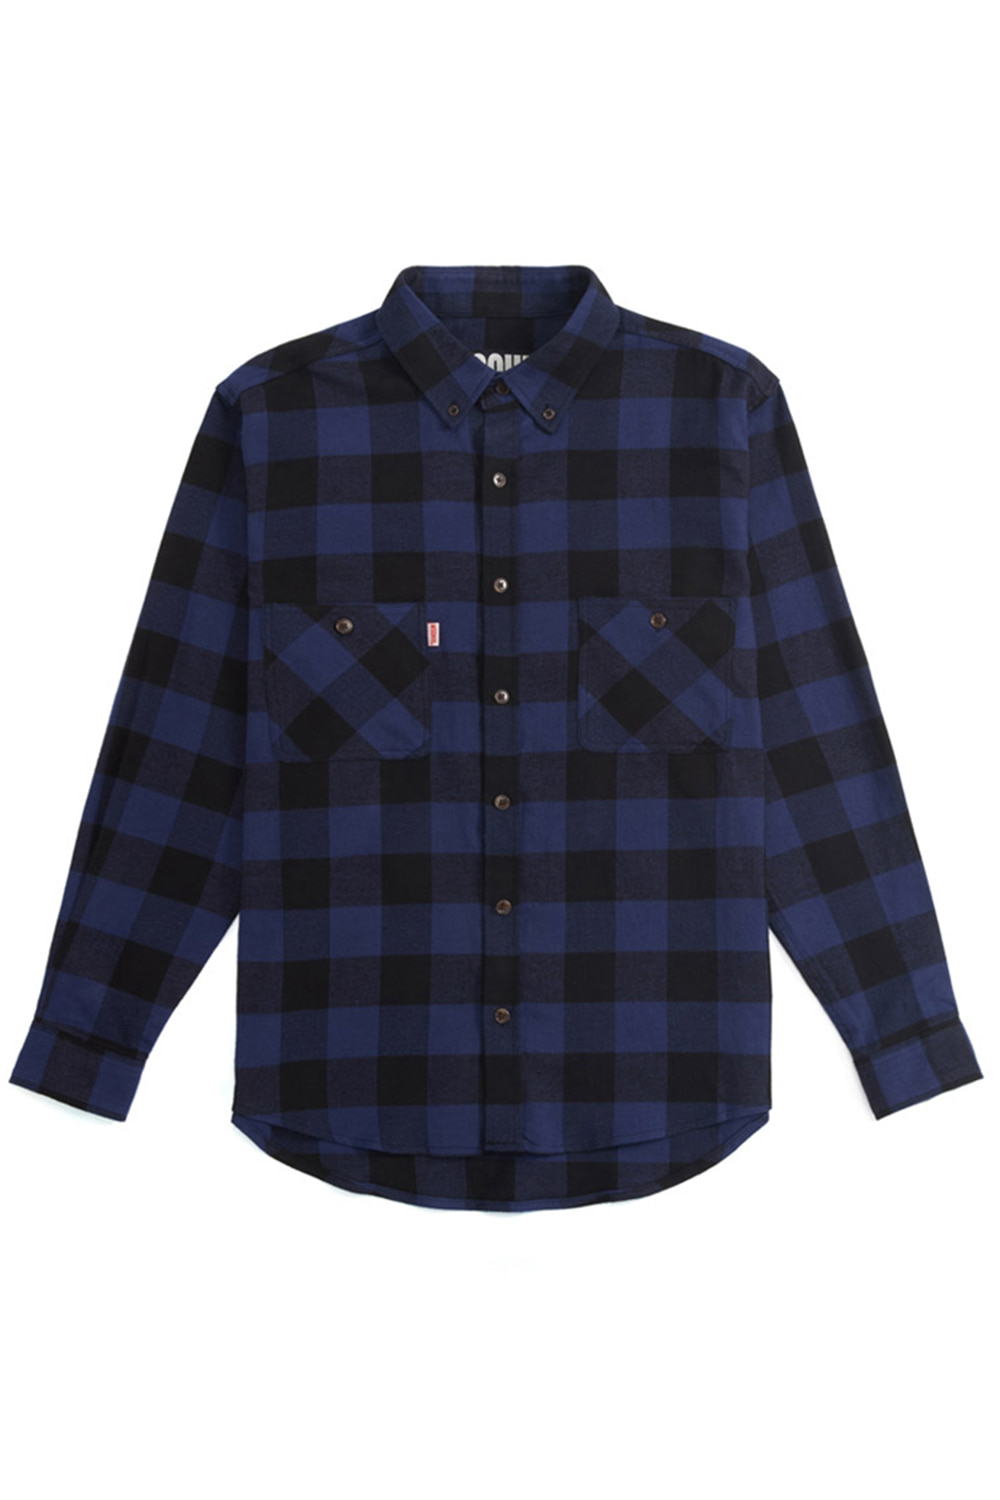 CHECK SHIRT_buffalo check blue